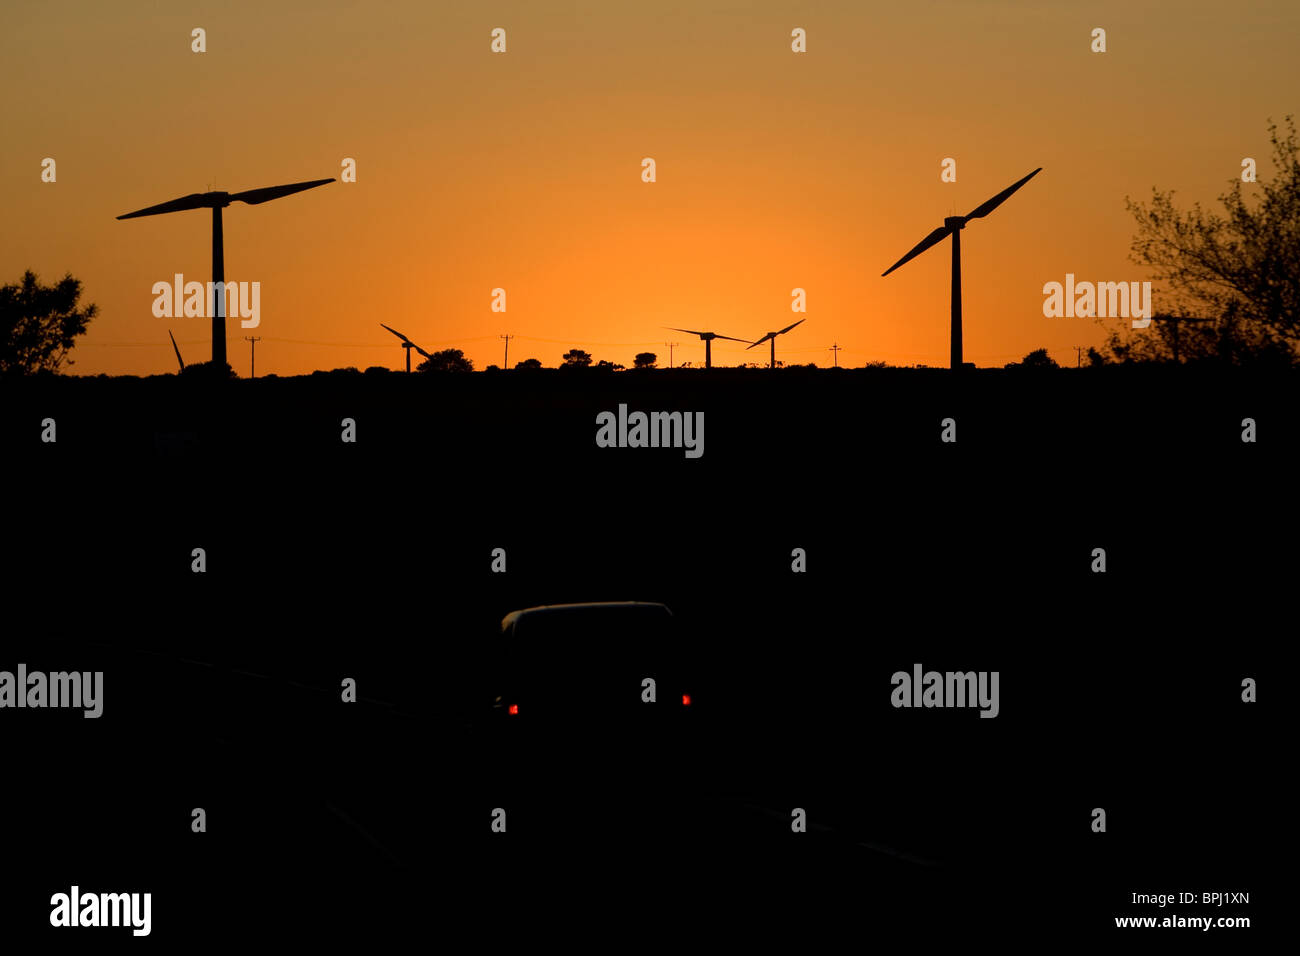 Cold Northcott wind farm, Cornwall. Turbines silhouetted against sunset. - Stock Image